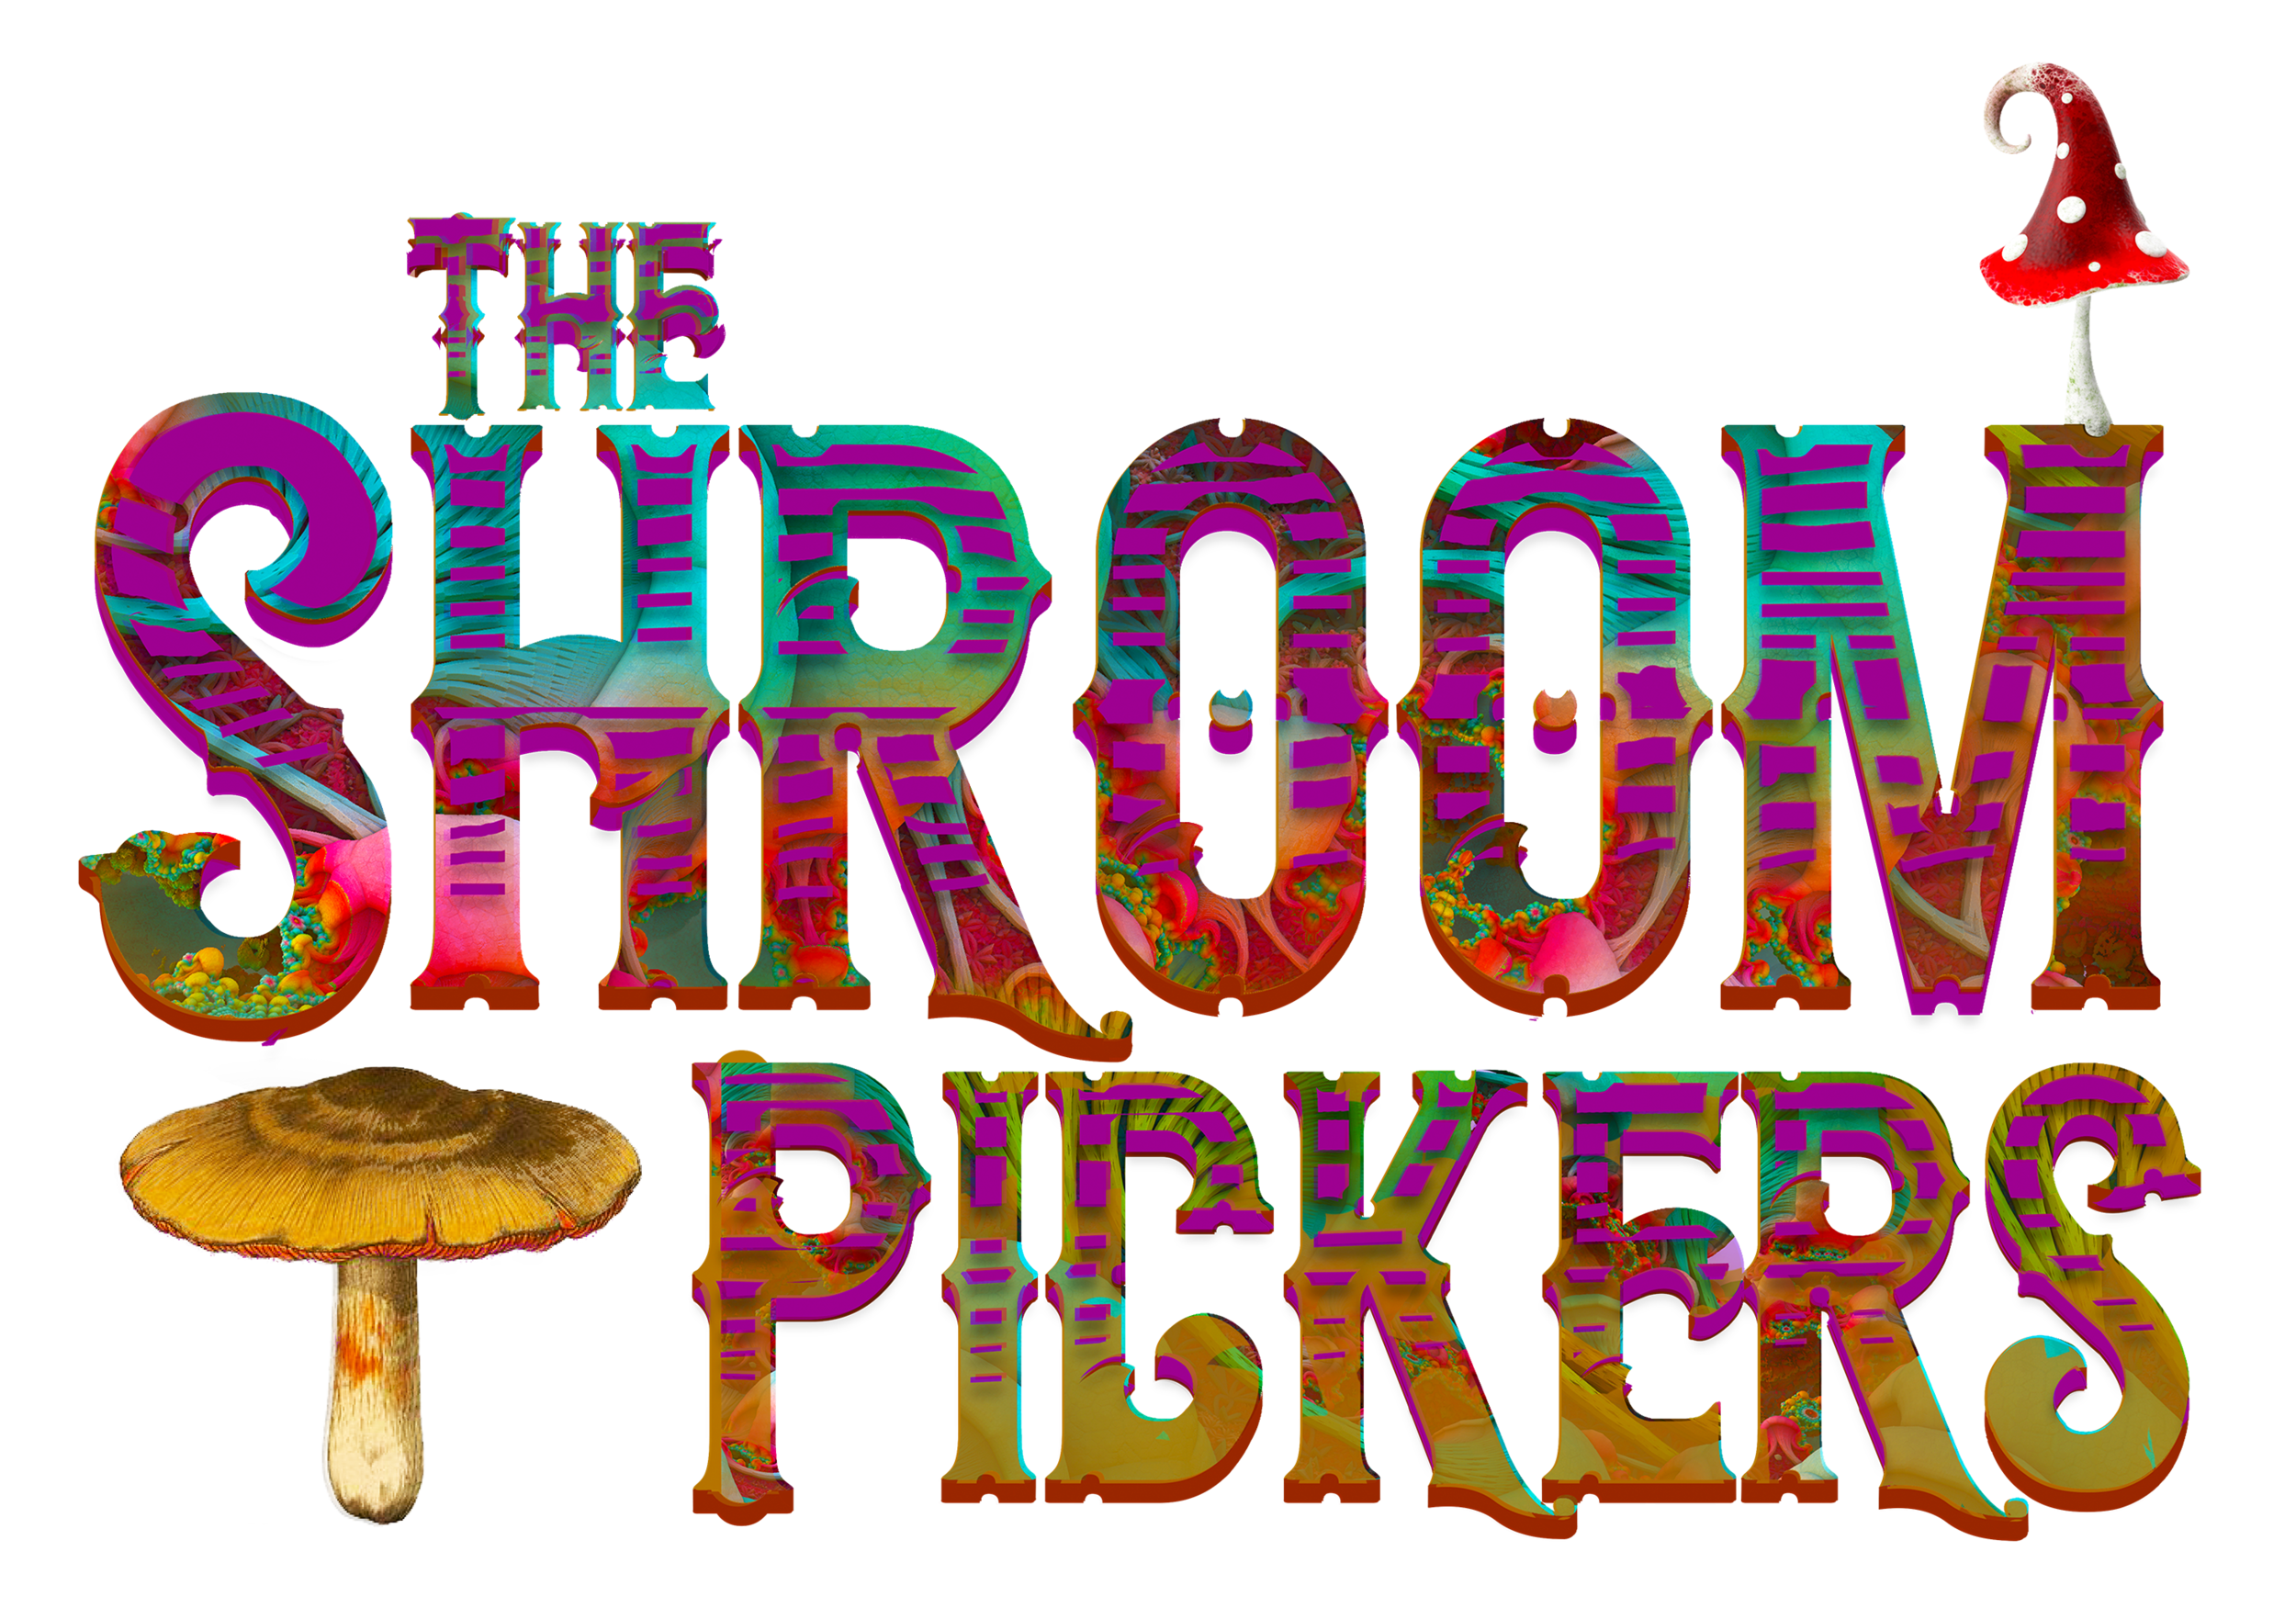 the shroom pickers_concept_1.png